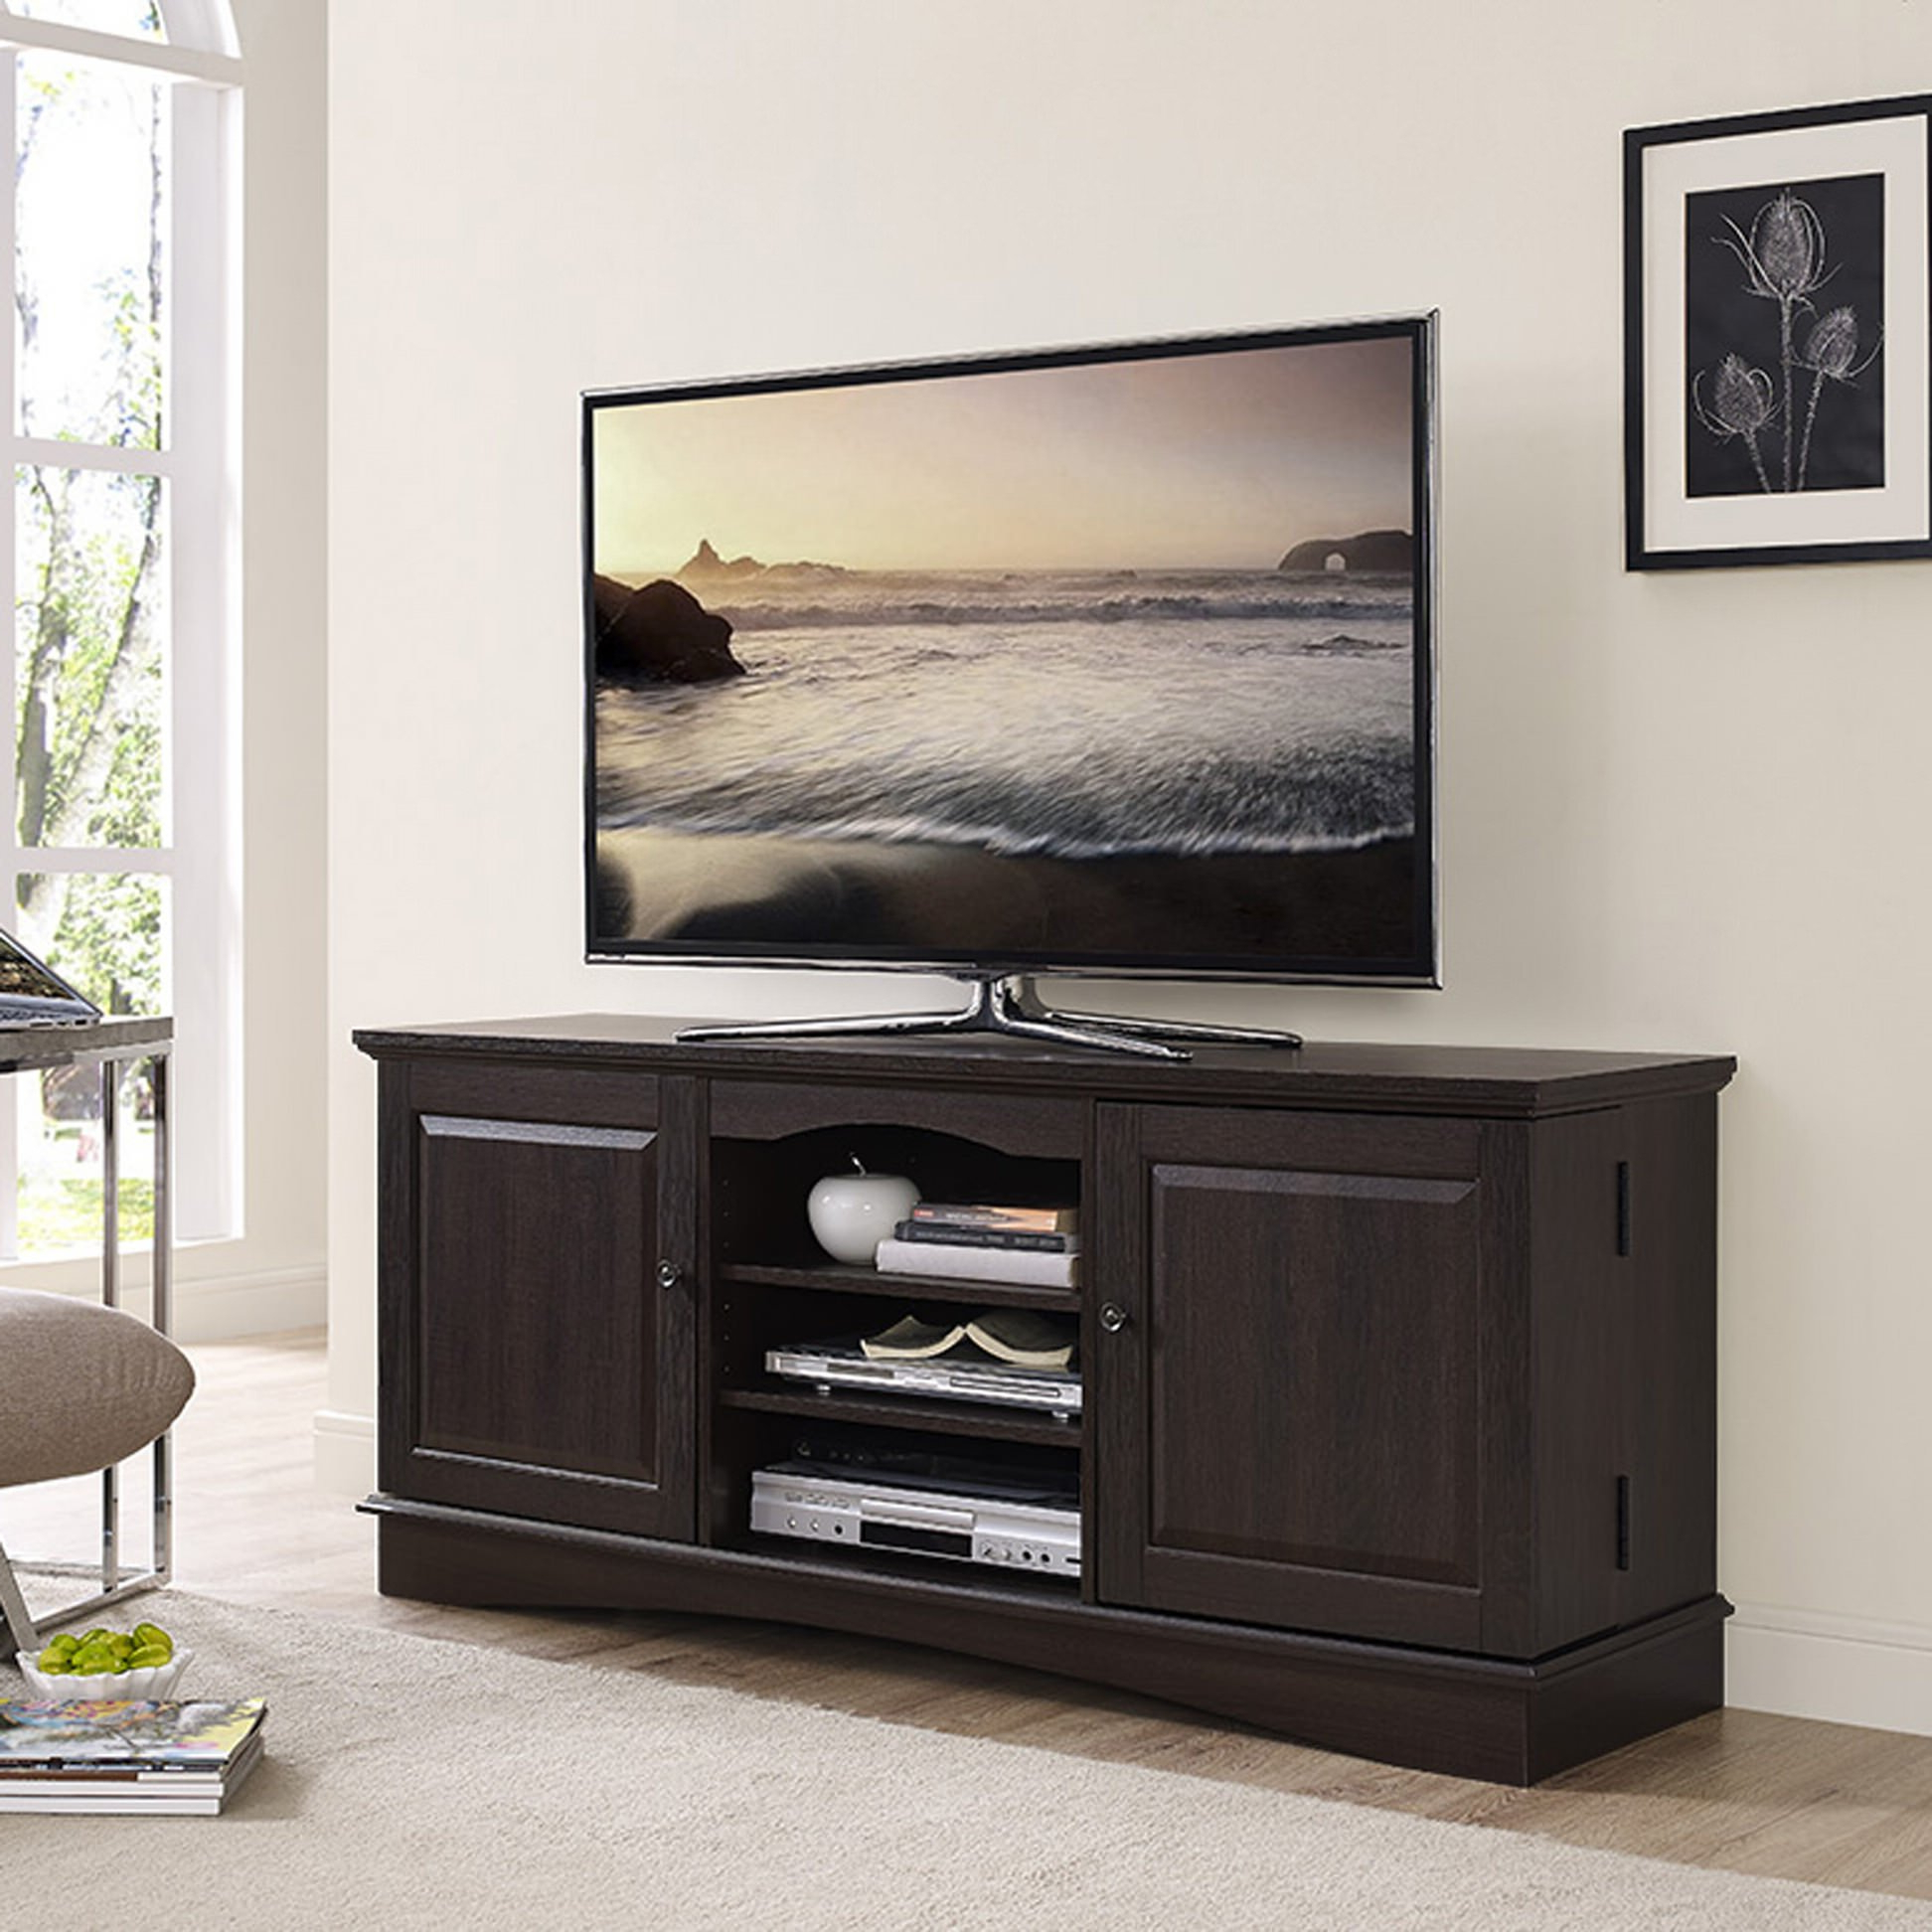 """Most Current 60 Inch Espresso Wood Tv Standwalker Edison With Kasen Tv Stands For Tvs Up To 60"""" (View 5 of 25)"""